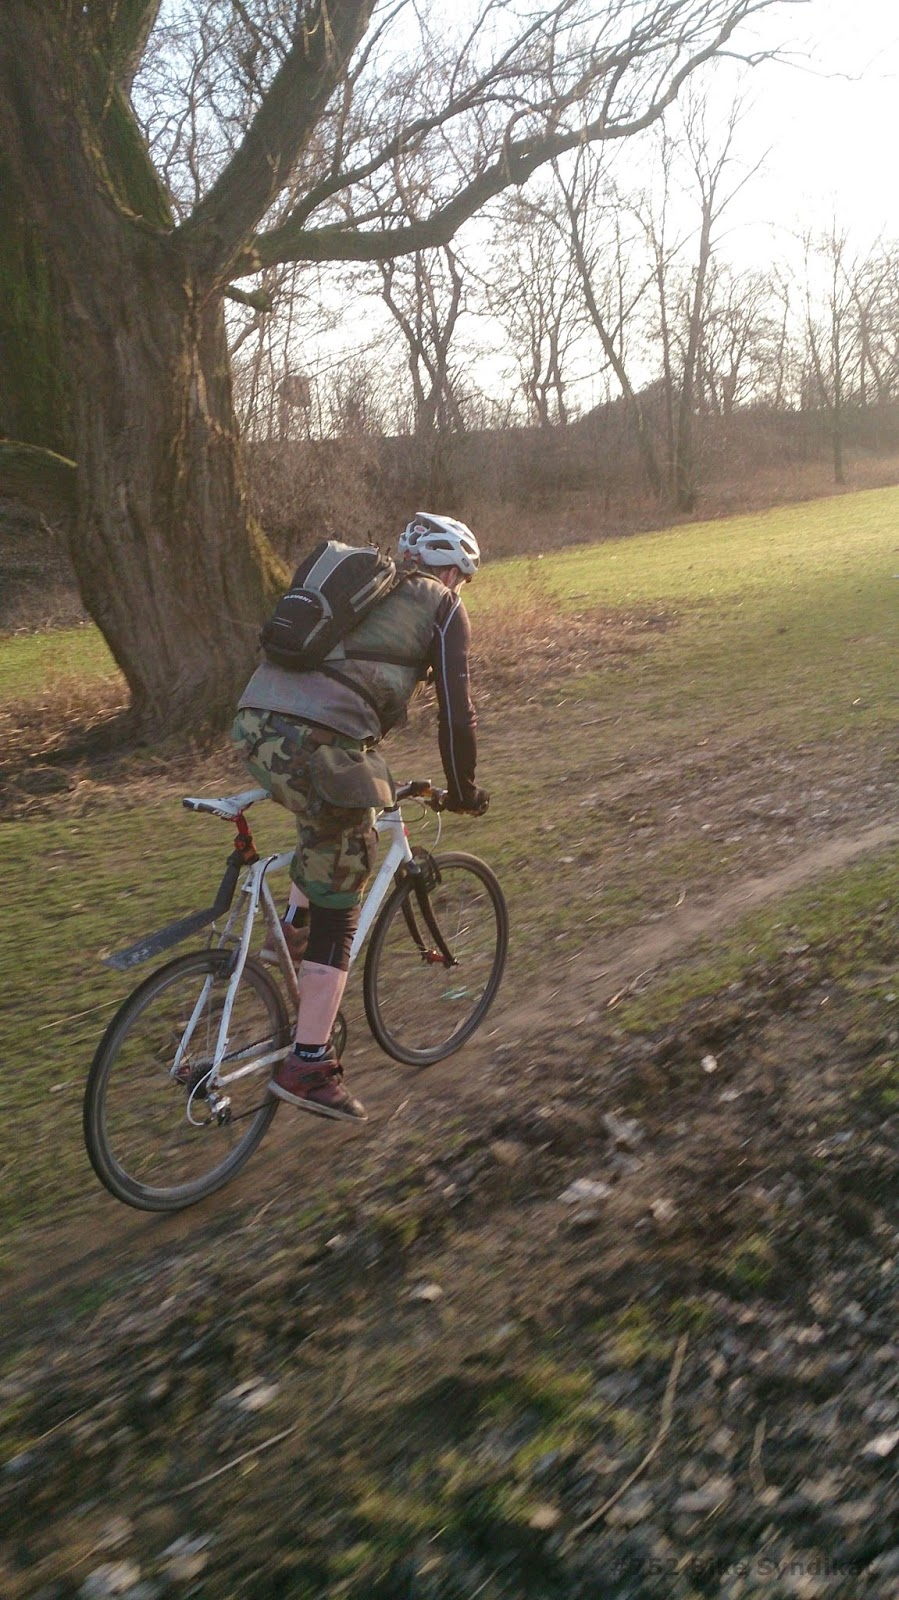 Tearing it up on a cyclocross bike